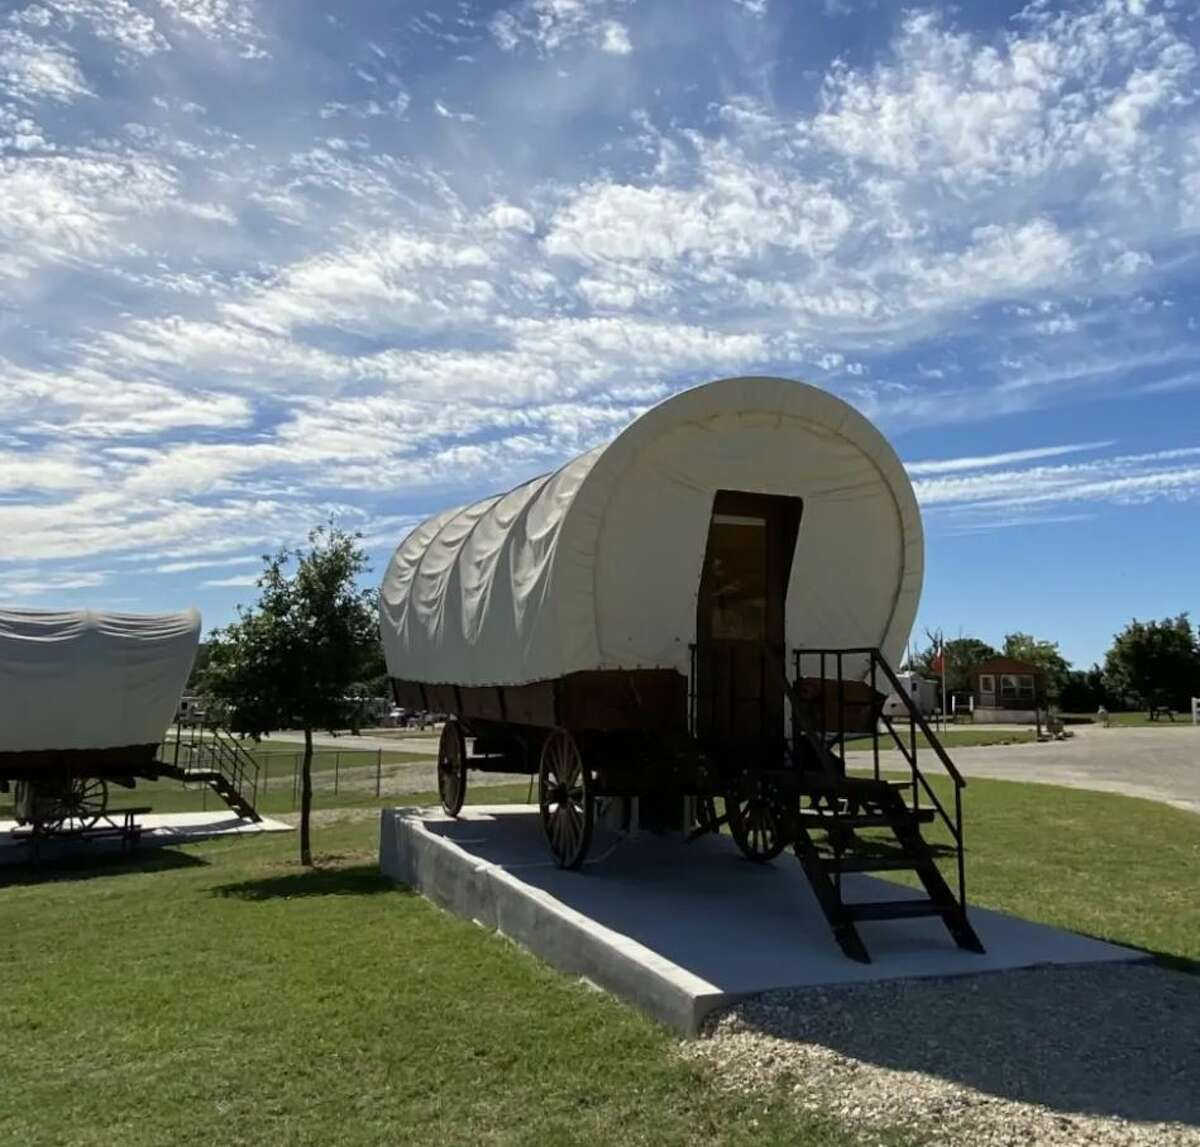 For $125 per night, you can rent one of the five Conestoga covered wagons on the campground near Fredericksburg. If you're a history buff, this is an ideal spot. Conestoga wagons were used extensively in the eighteenth and nineteenth century to carry farm products such as corn, barley and wheat, according to historians. The peak years of use were from 1820 to 1840.